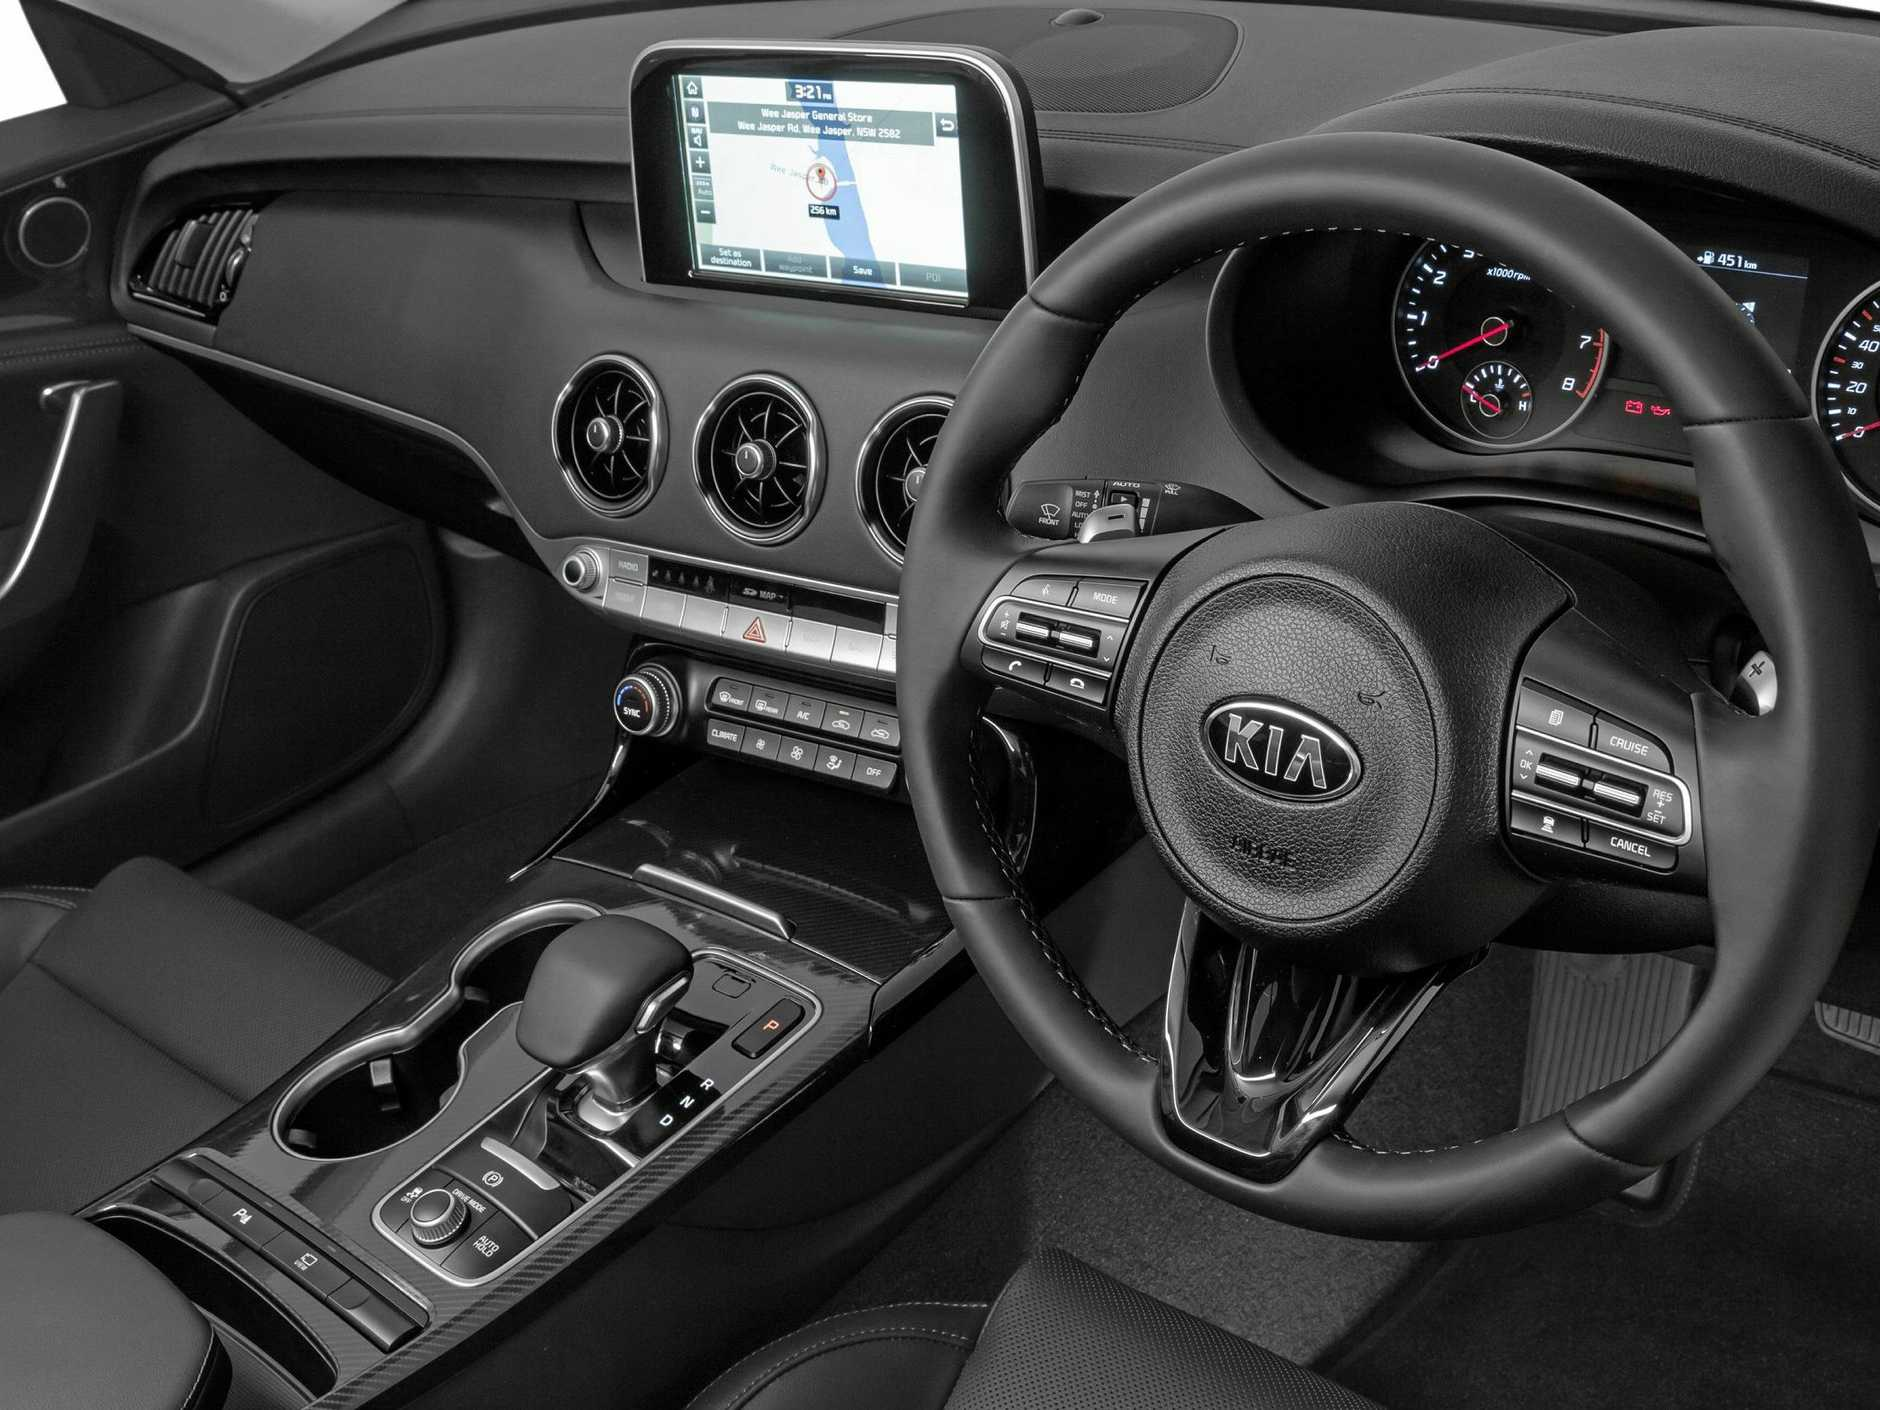 Inside the mid-range 2018 Kia Stinger Si.